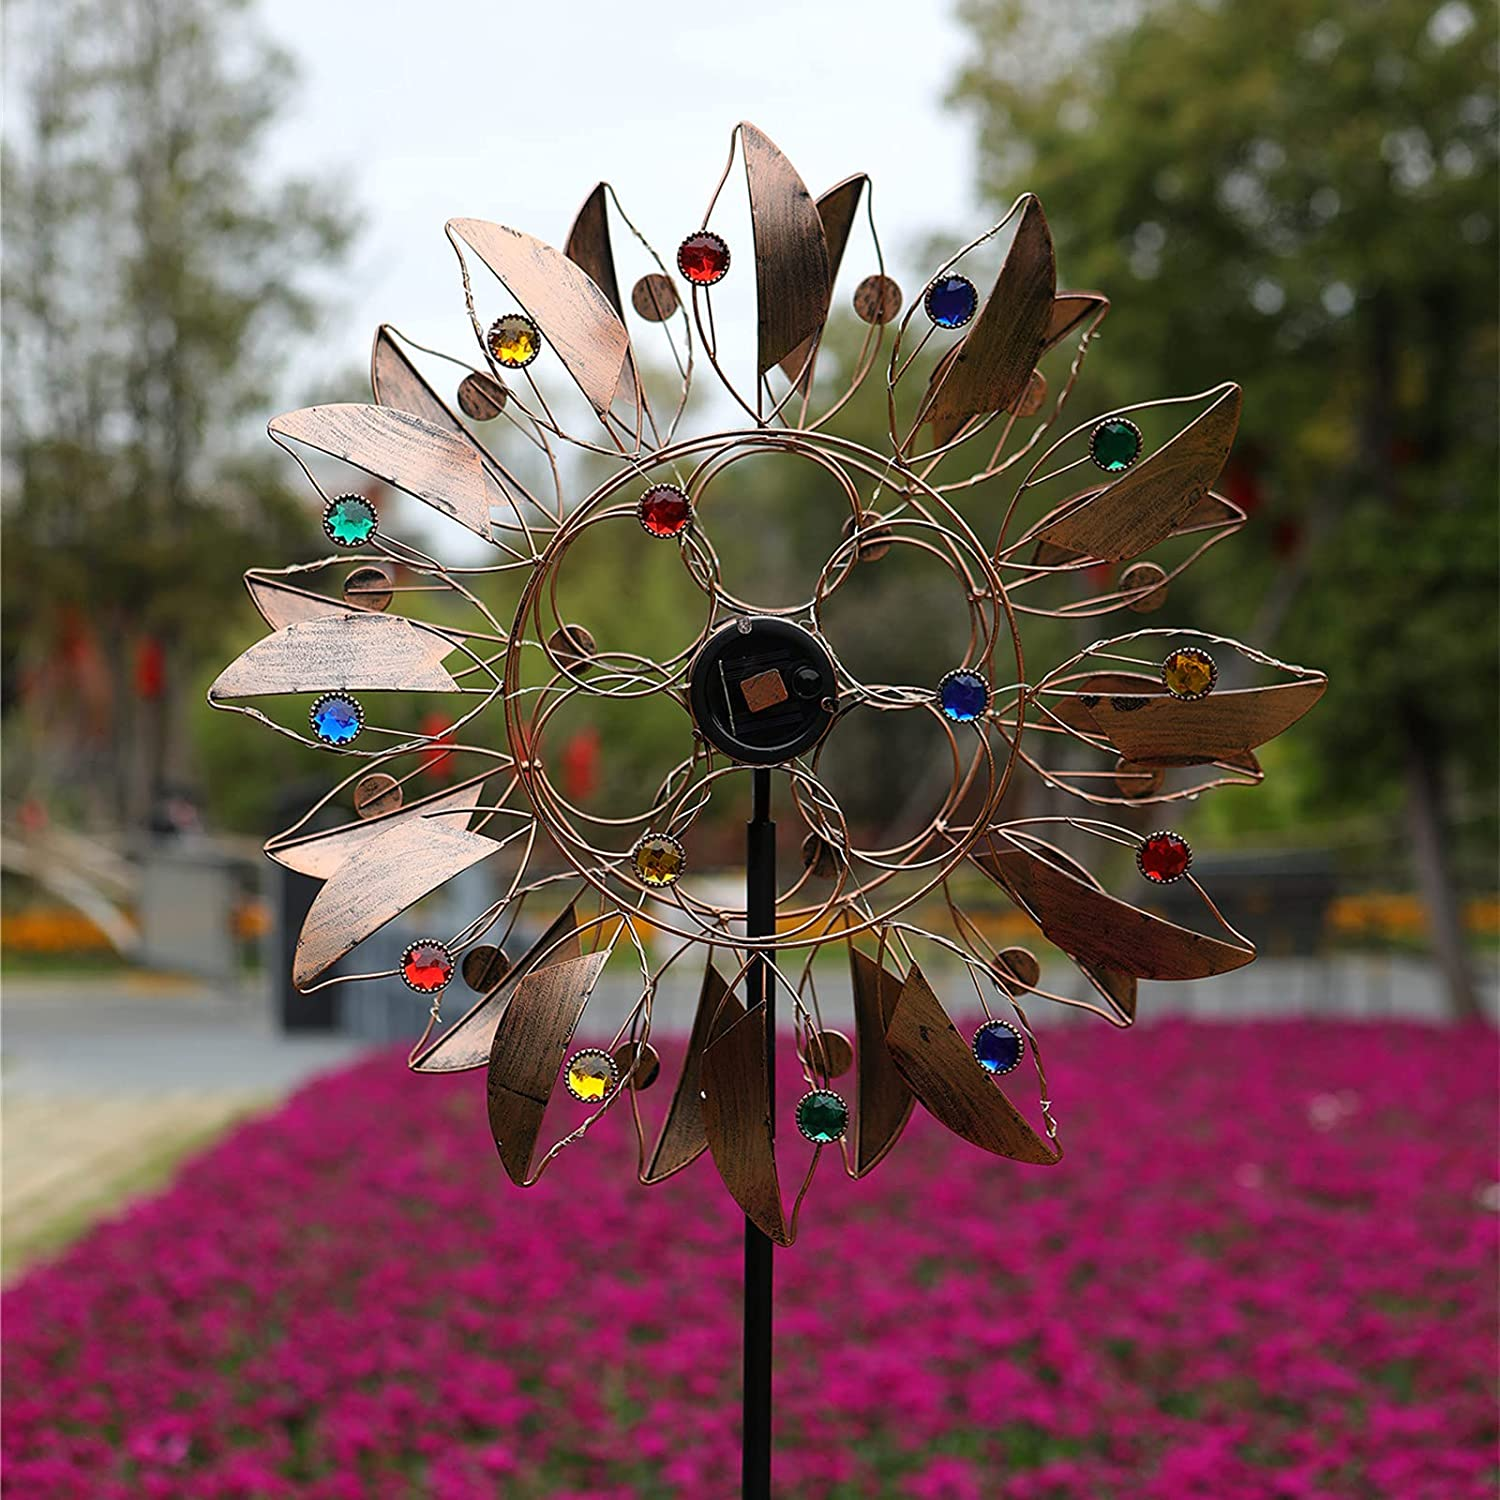 Solar Wind Spinner - Outdoor LED Wind Catcher with Metal Garden Stake Dynamic Wind Vane, Decorative Lawn Ornament Wind Mill